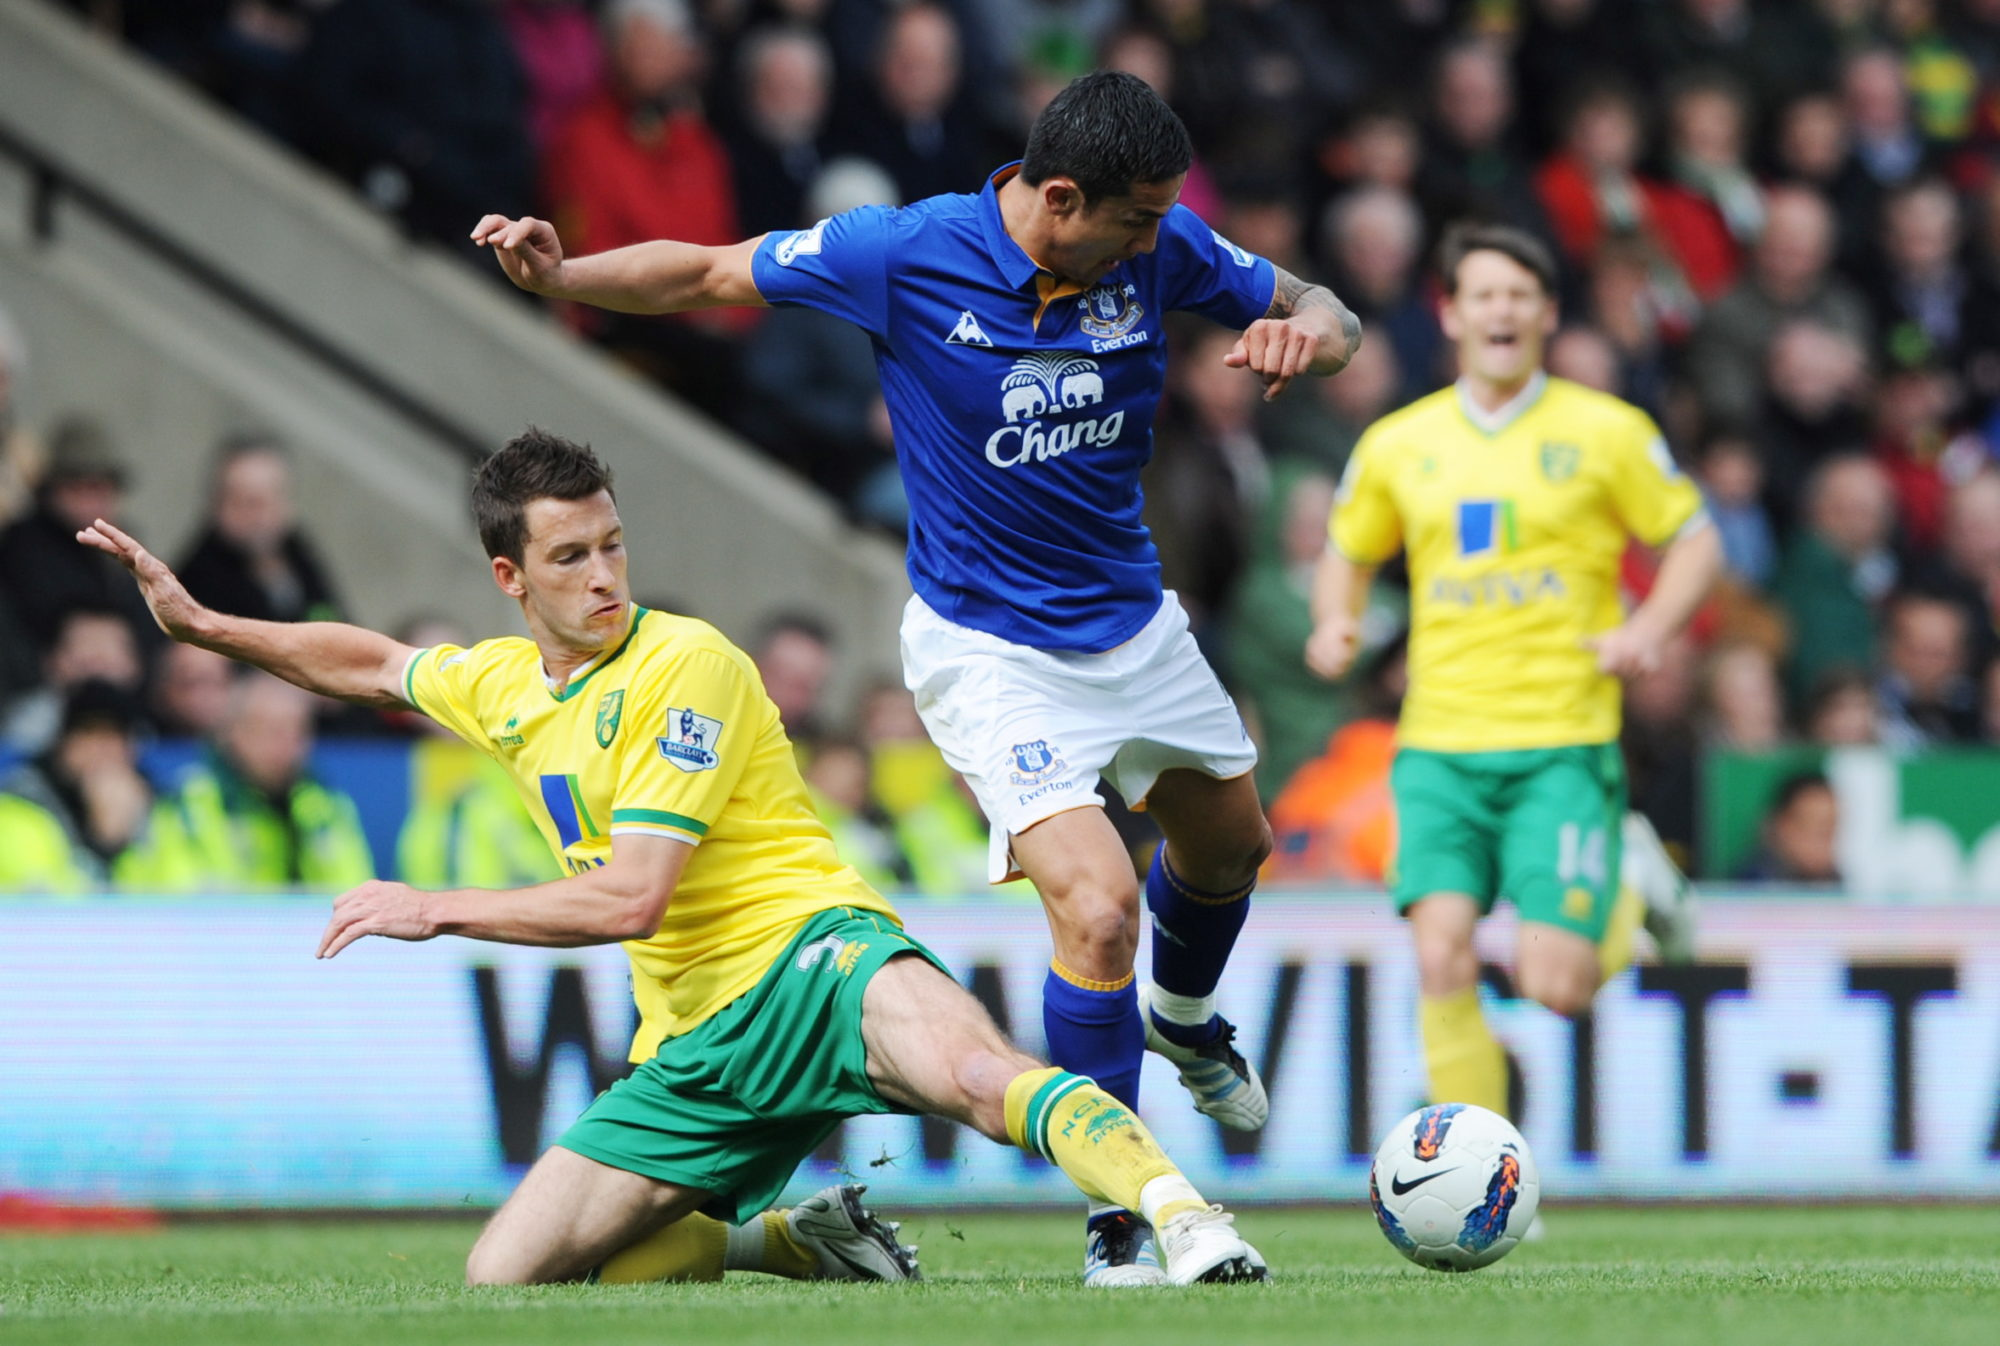 Norwich City v Everton Barclays Premier League